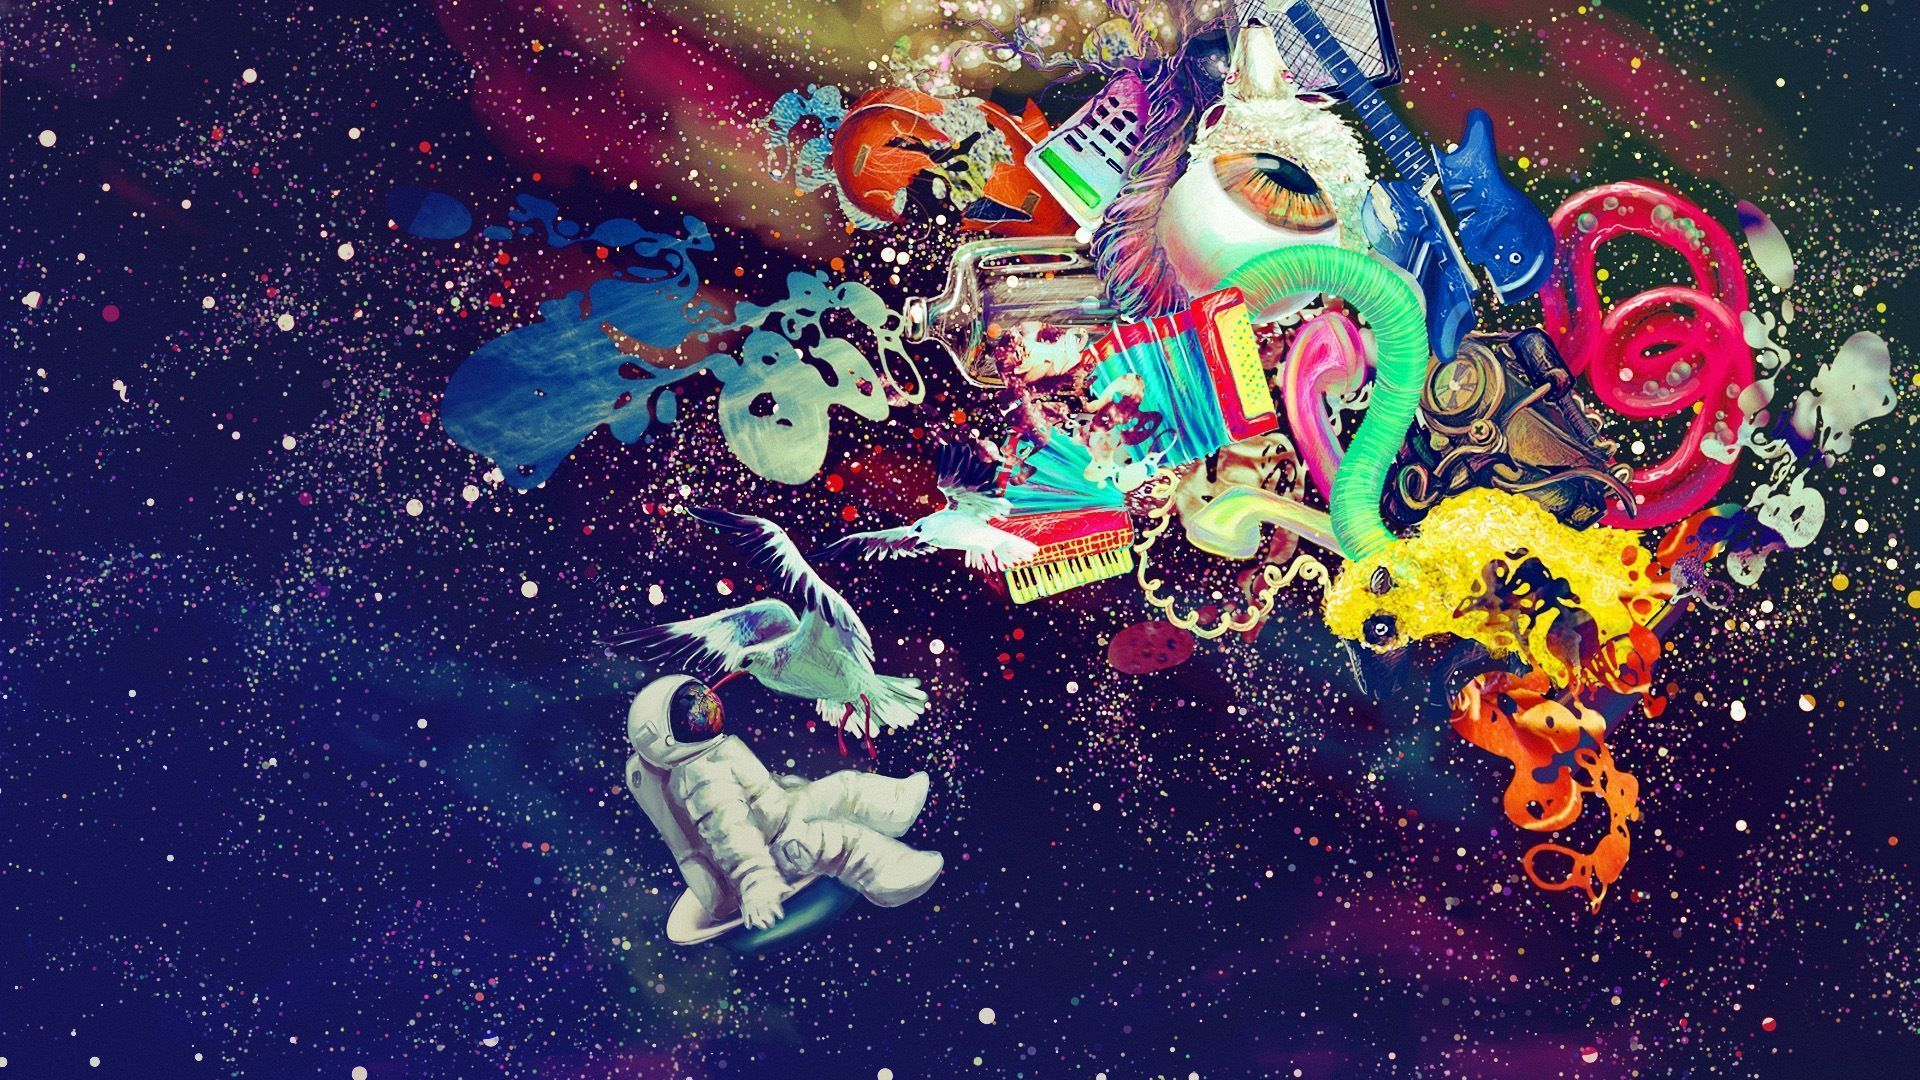 Trippy Wallpapers Hd Tumblr Trippy Space Wallpapers